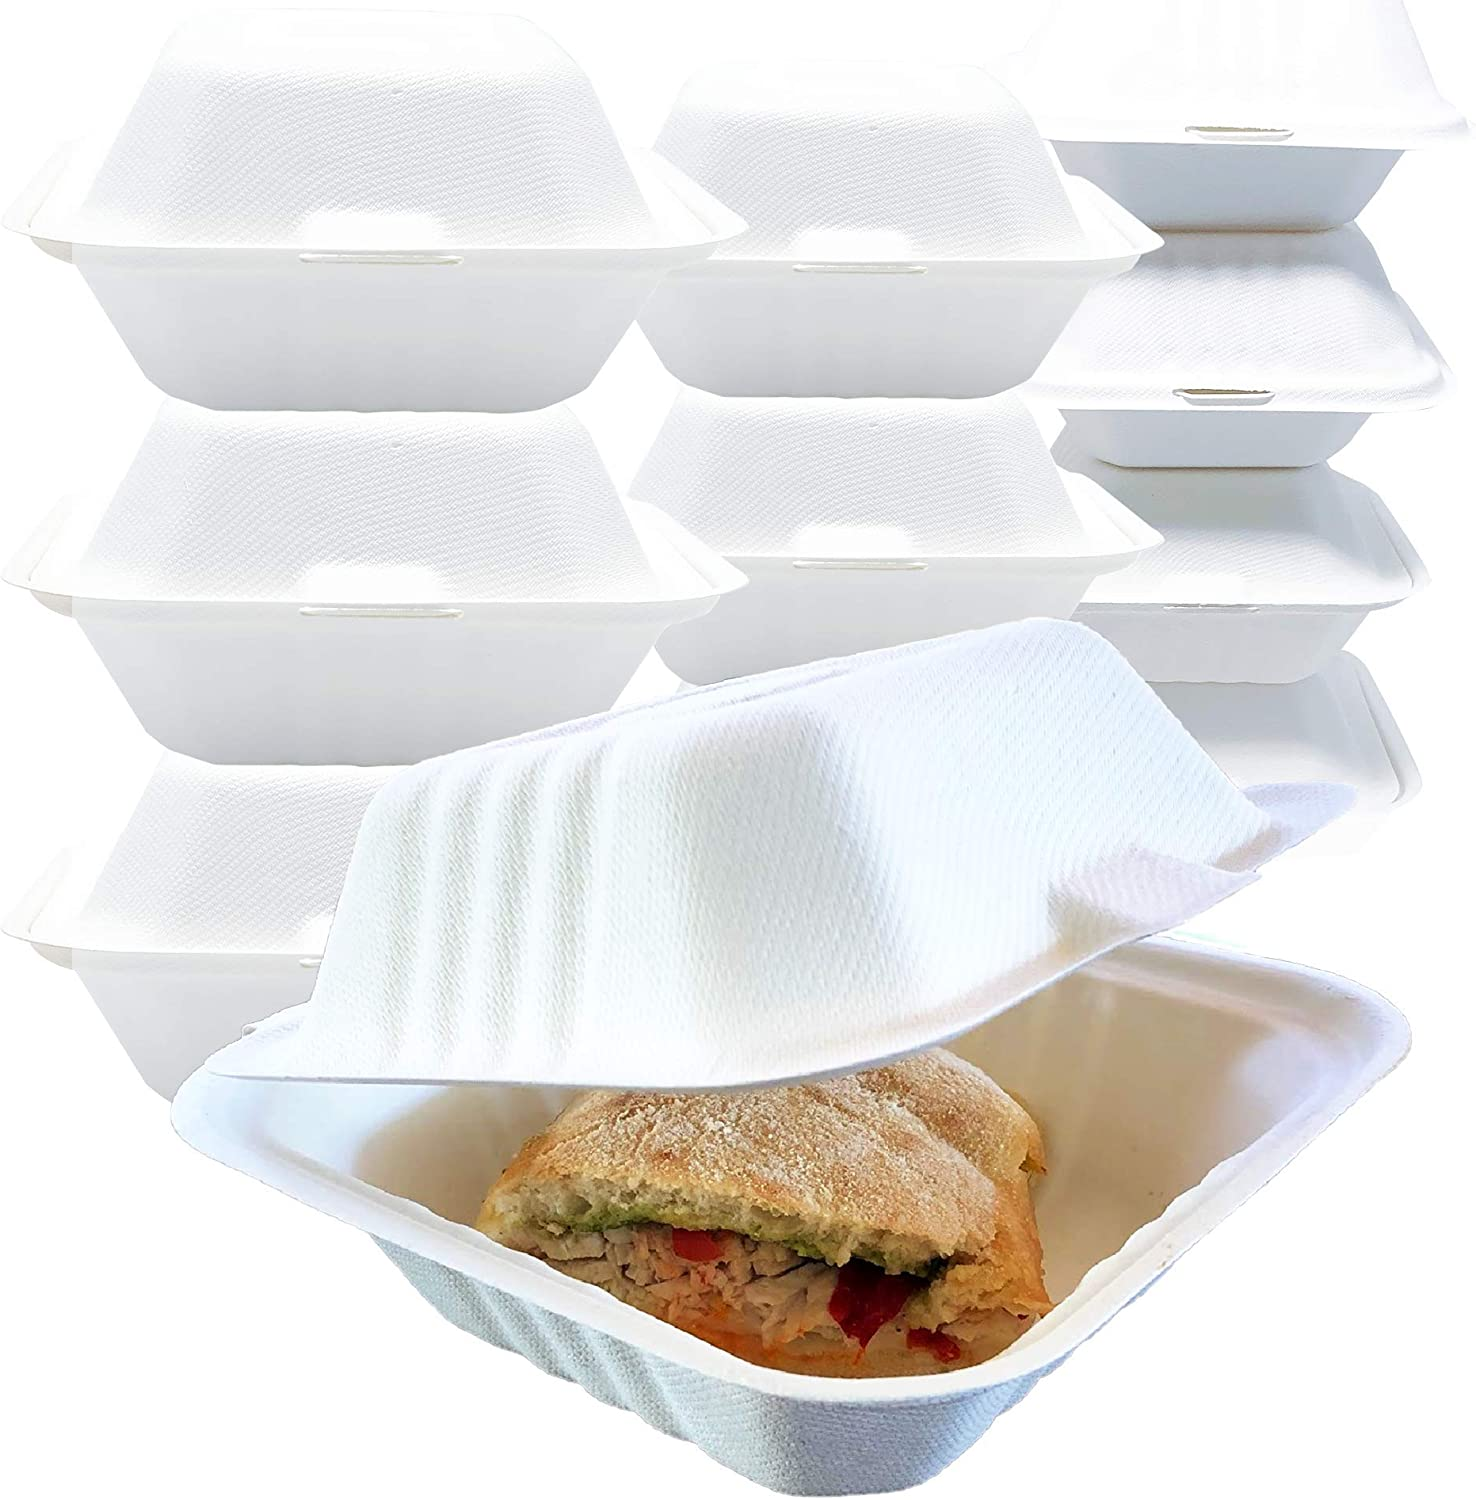 Reli. Compostable To Go Food Containers, Clamshell 6